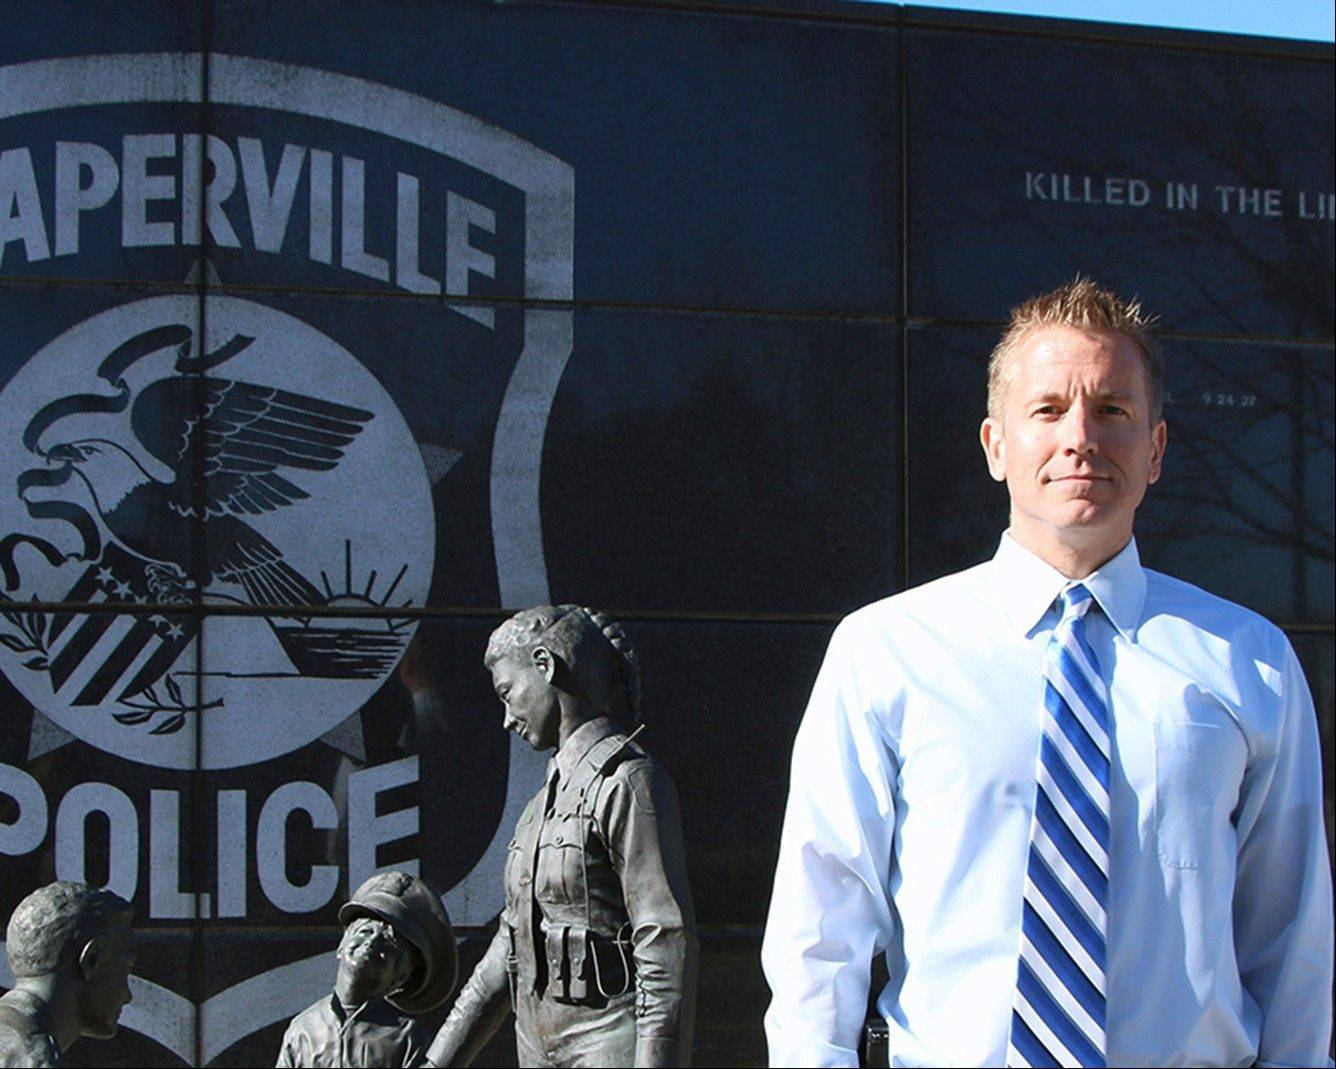 Jason Arres was promoted Monday to the rank of commander in the Naperville Police Department.